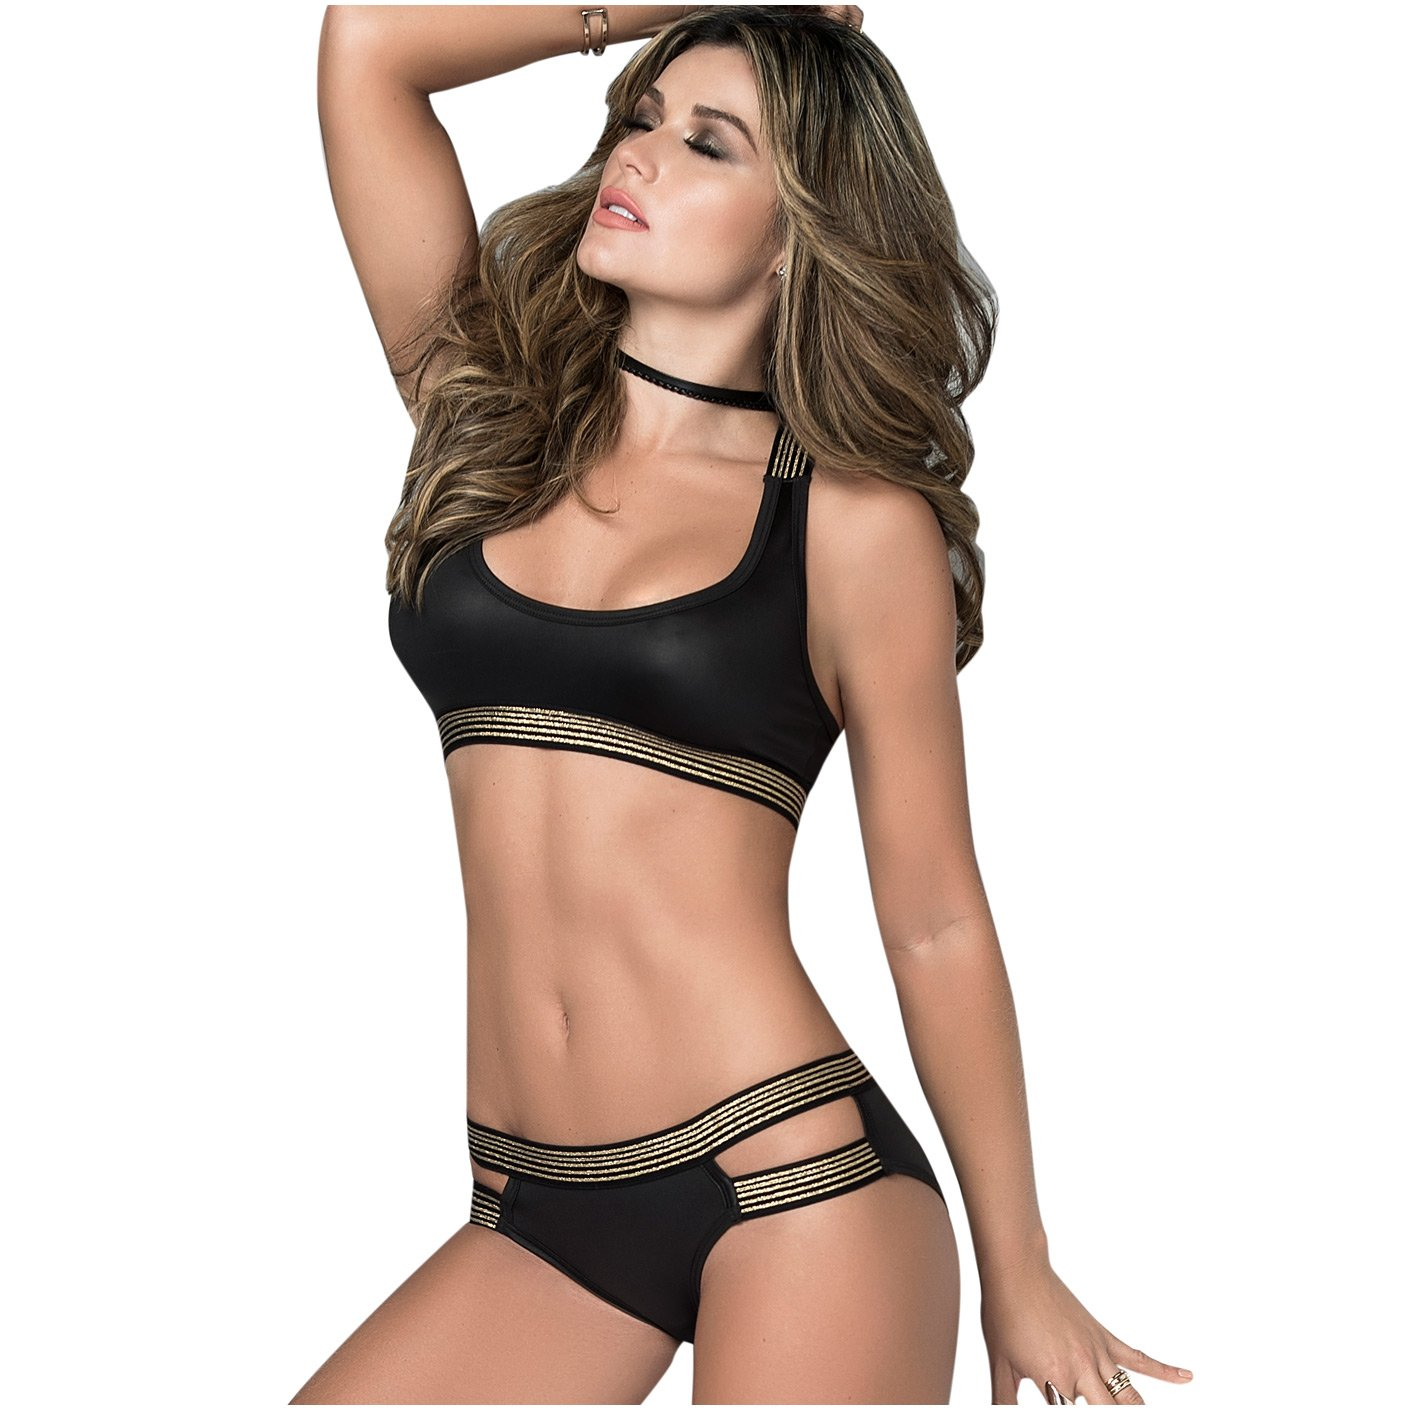 Mapalé 2/3 Piece Set Athletic Sexy Underwear for Women Ropa Intima Para Mujer at Amazon Womens Clothing store: